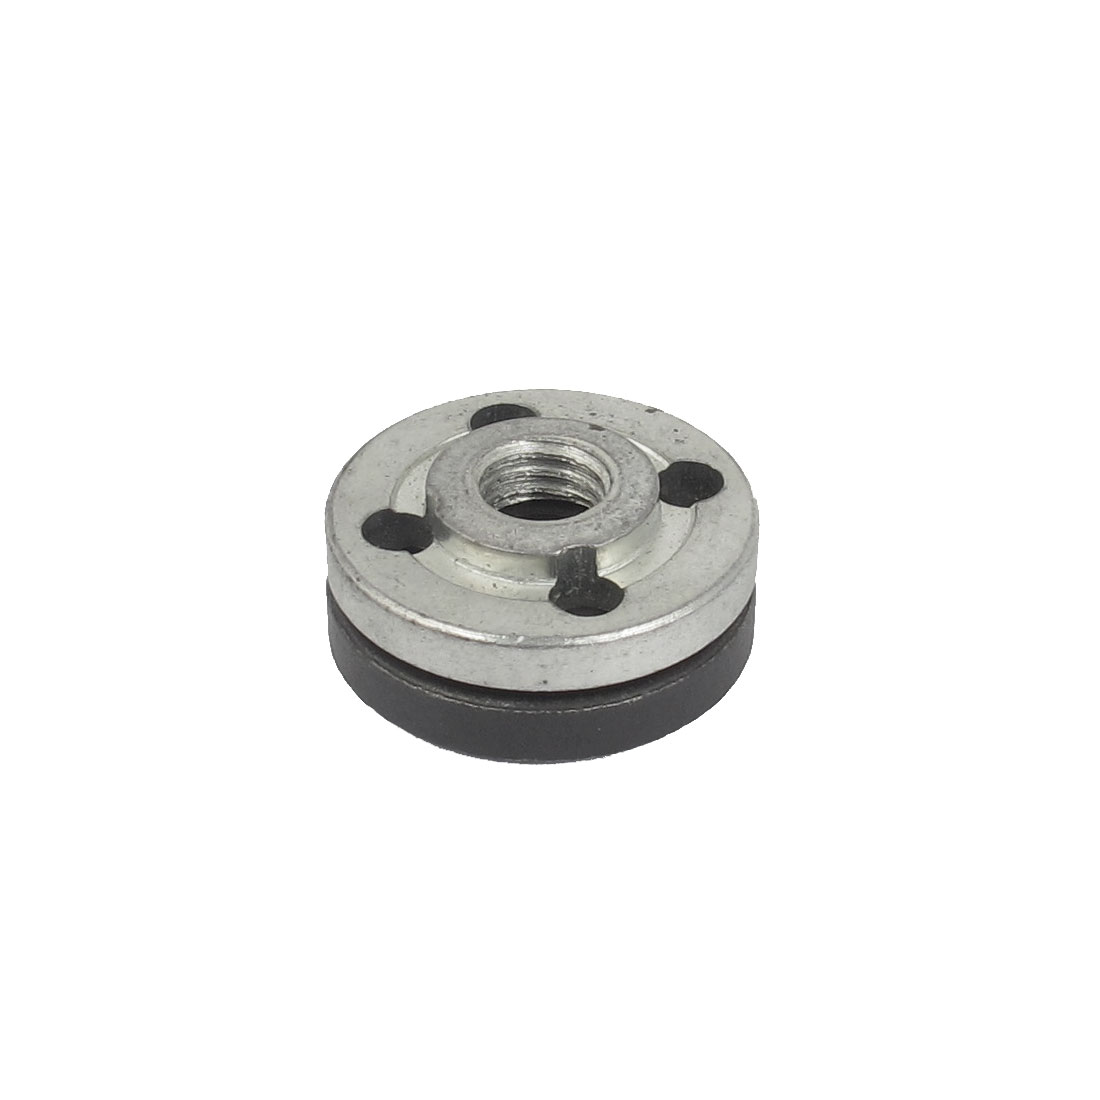 Metal Round Clamp Inner Outer Nuts Flange Fixing Pair for Bosch Angle Grinder